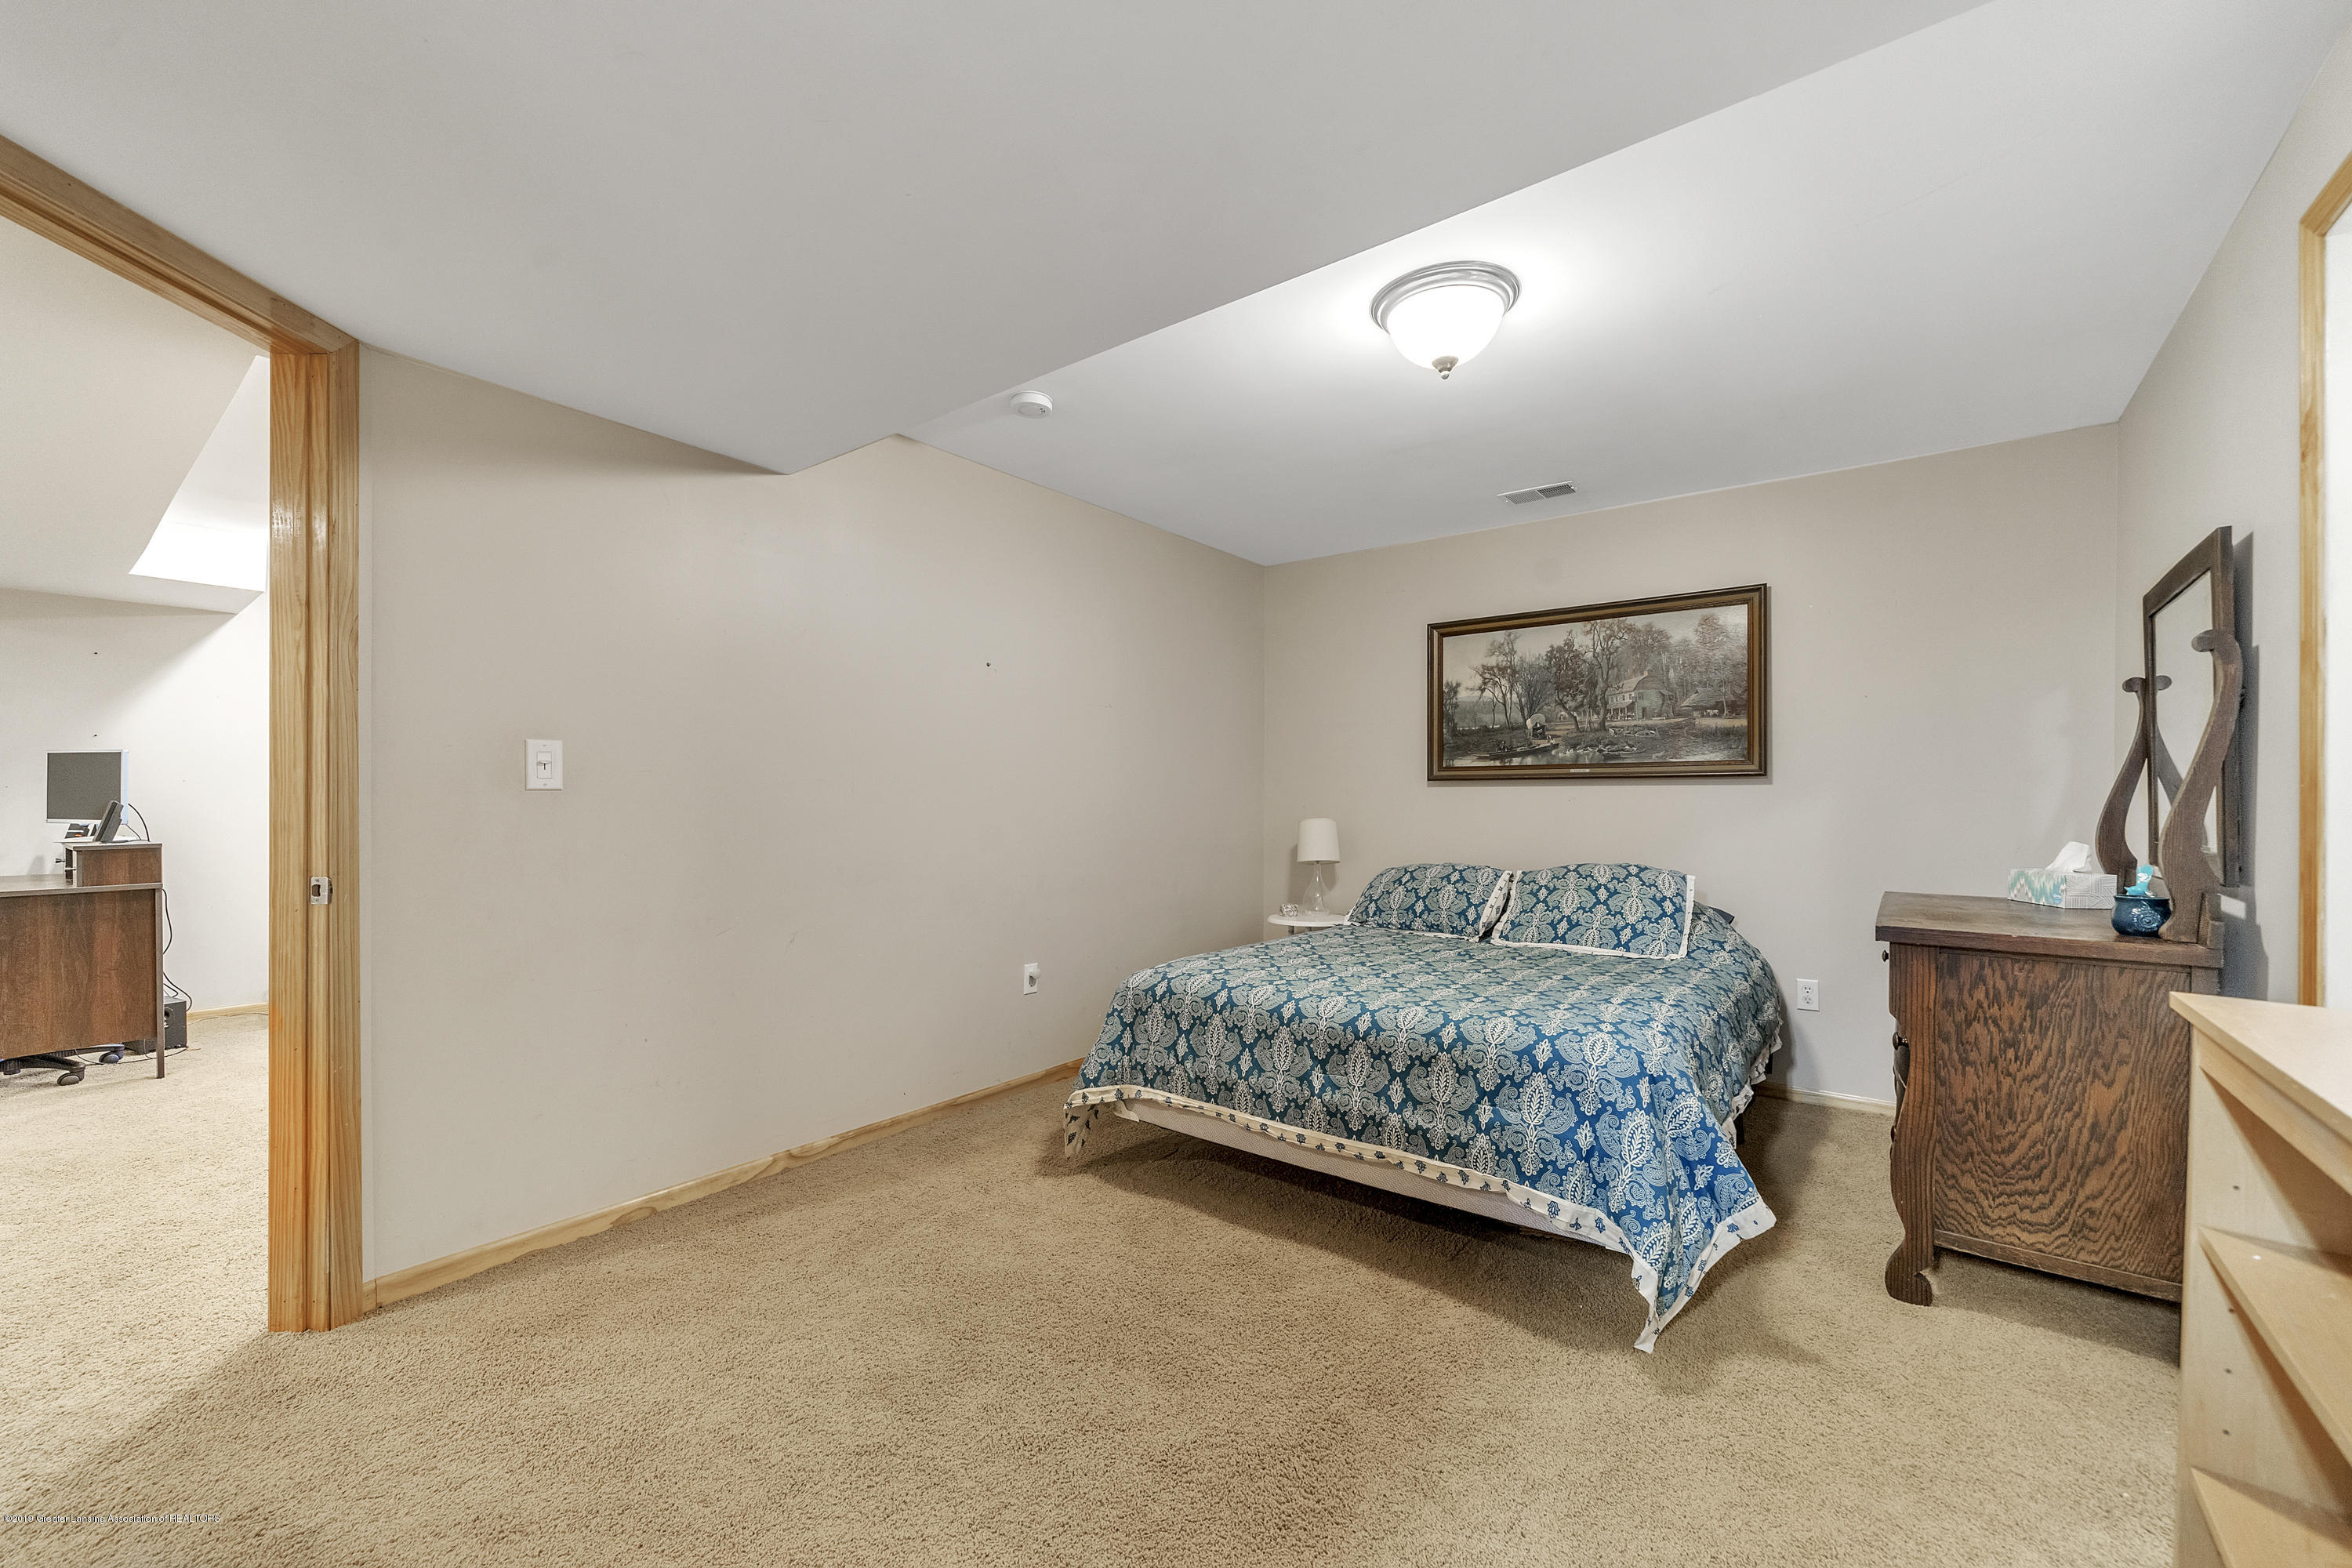 1258 Sumac Ln - 1258-Sumac-WindowStill-Real-Estate-Photo - 27